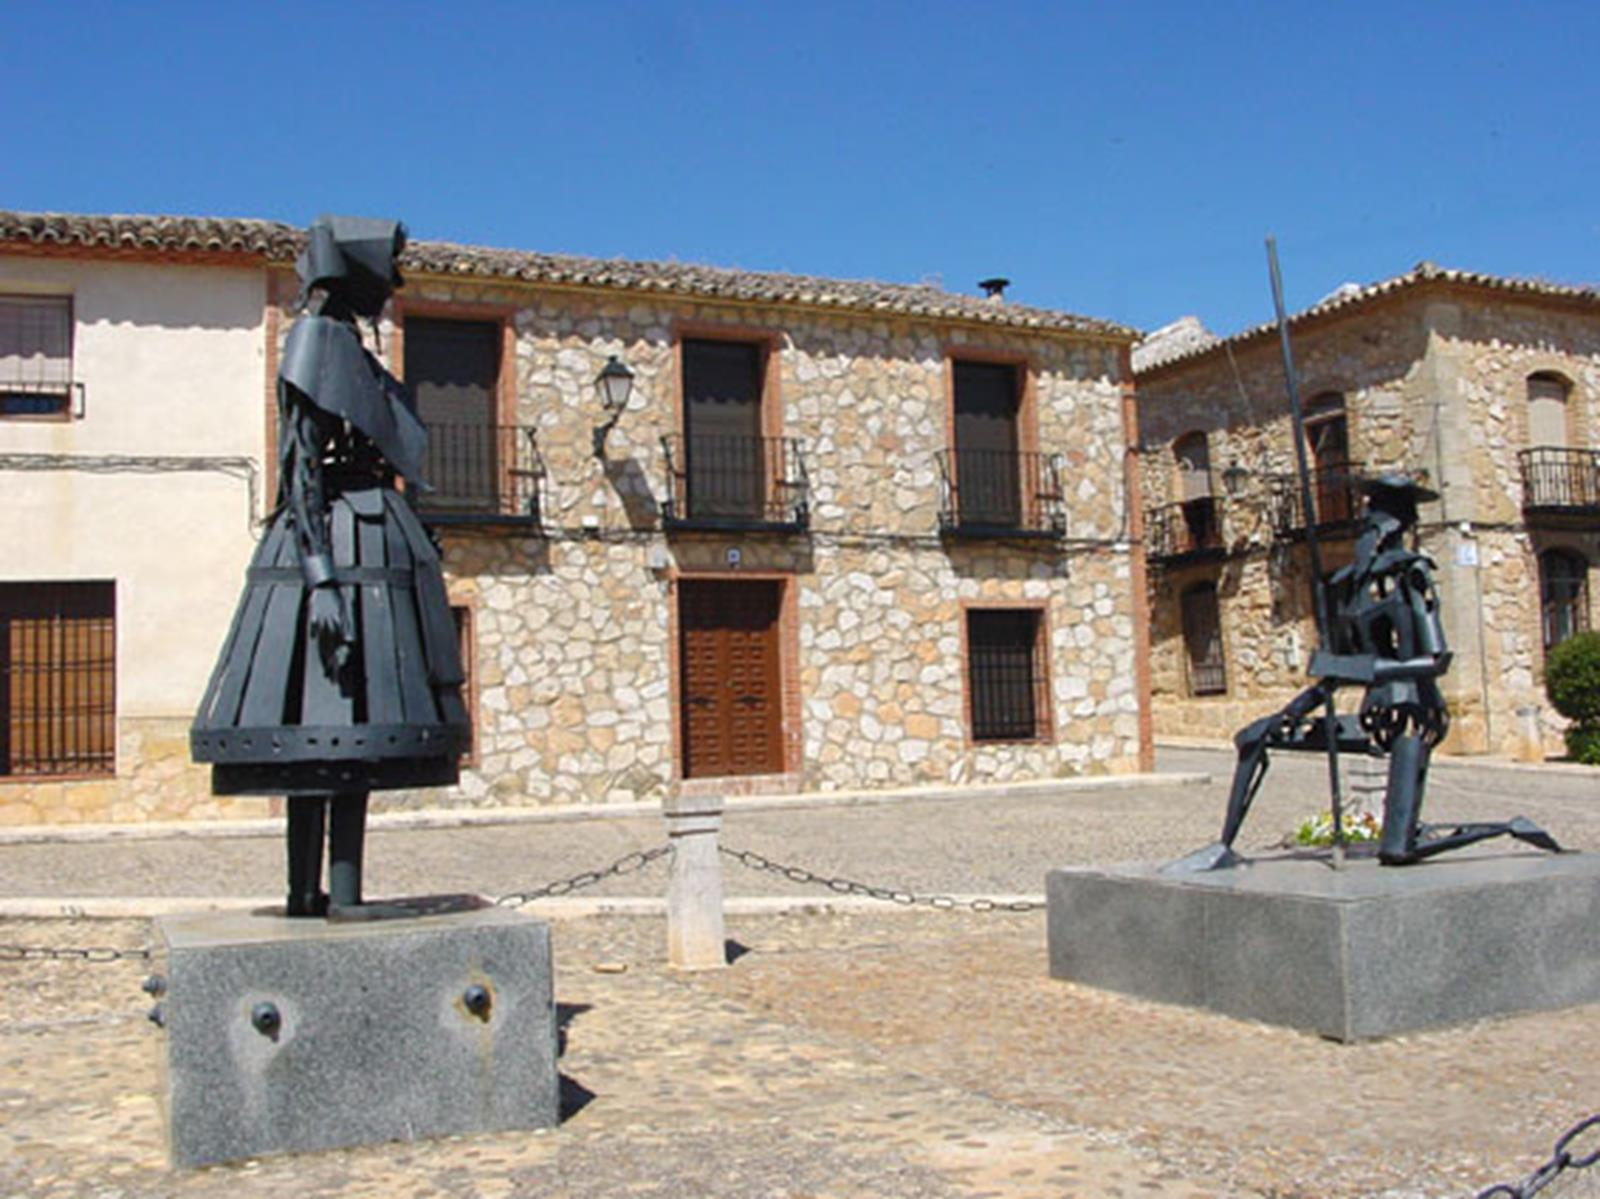 A Monument Dedicated to Don Quixote and Dulcinea